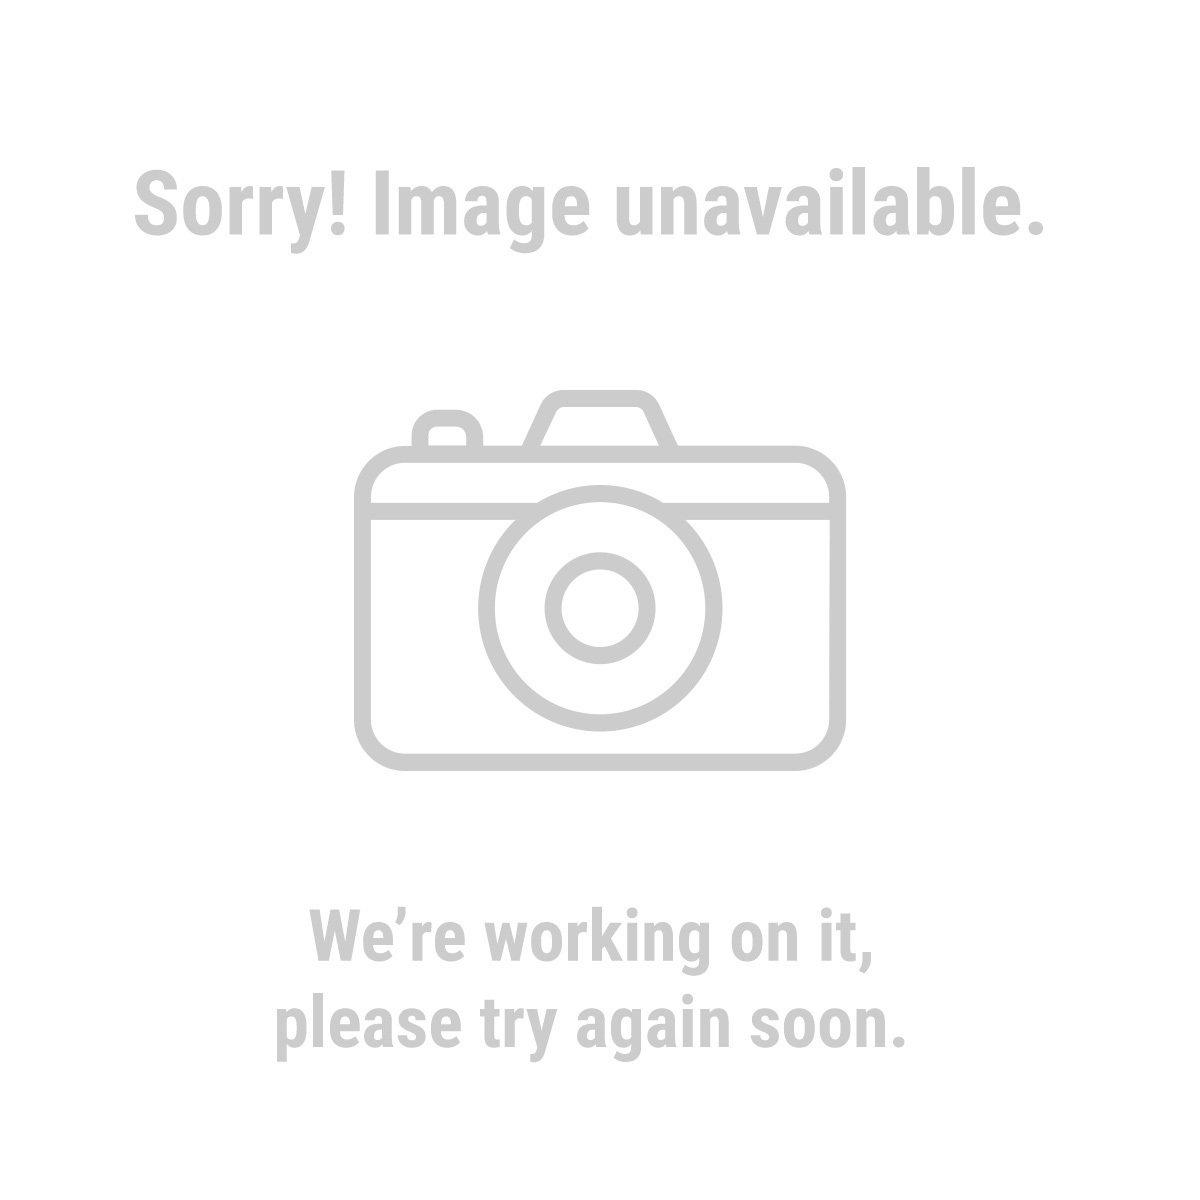 HFT® 41446 25 Ft. x 14 Gauge Outdoor Extension Cord